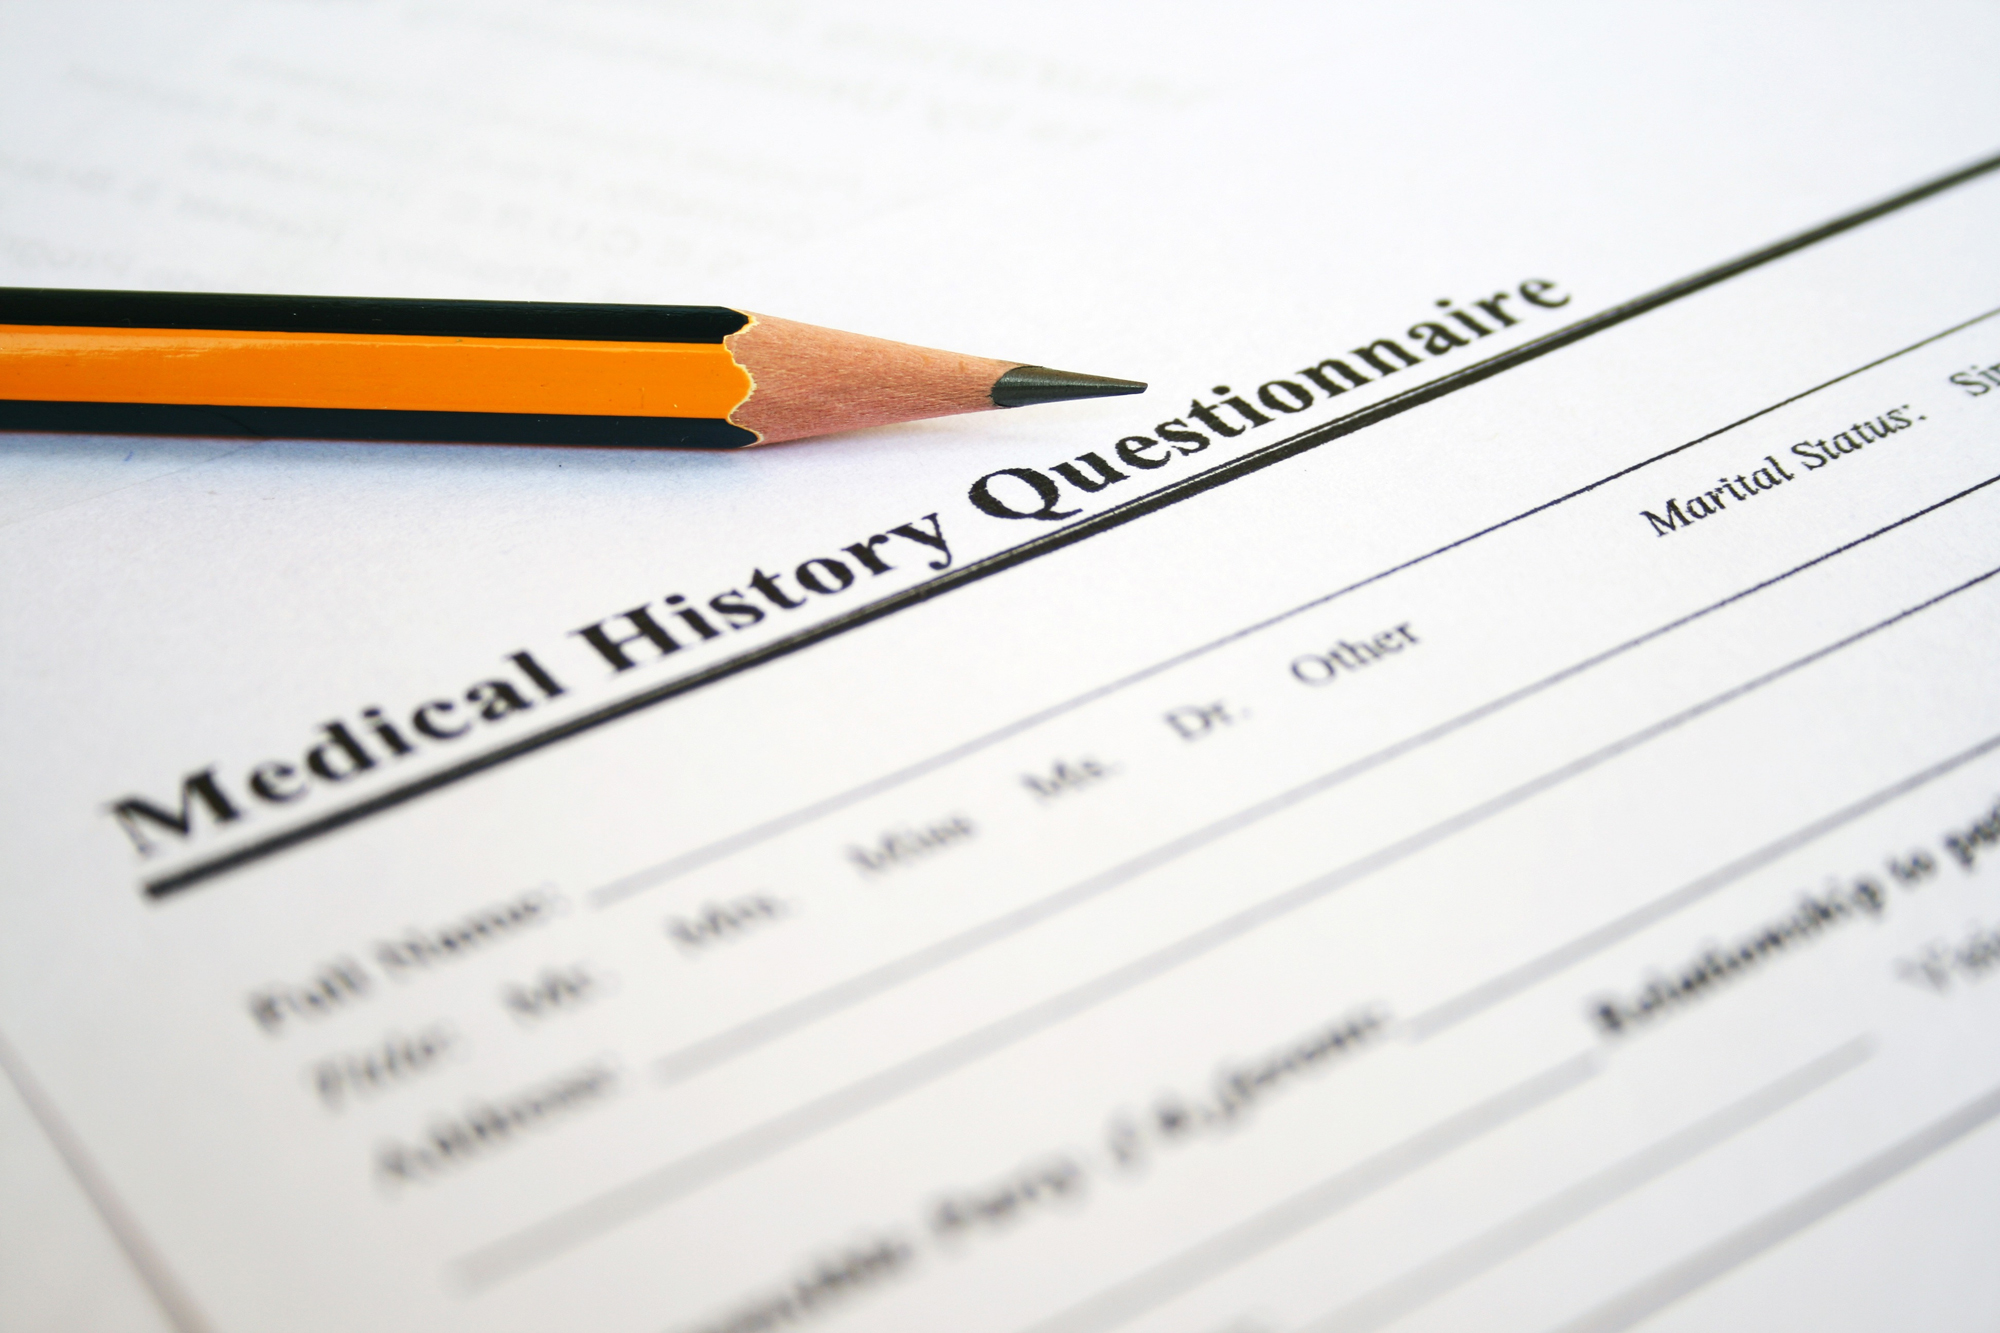 Patient medical history form to screen for prediabetes